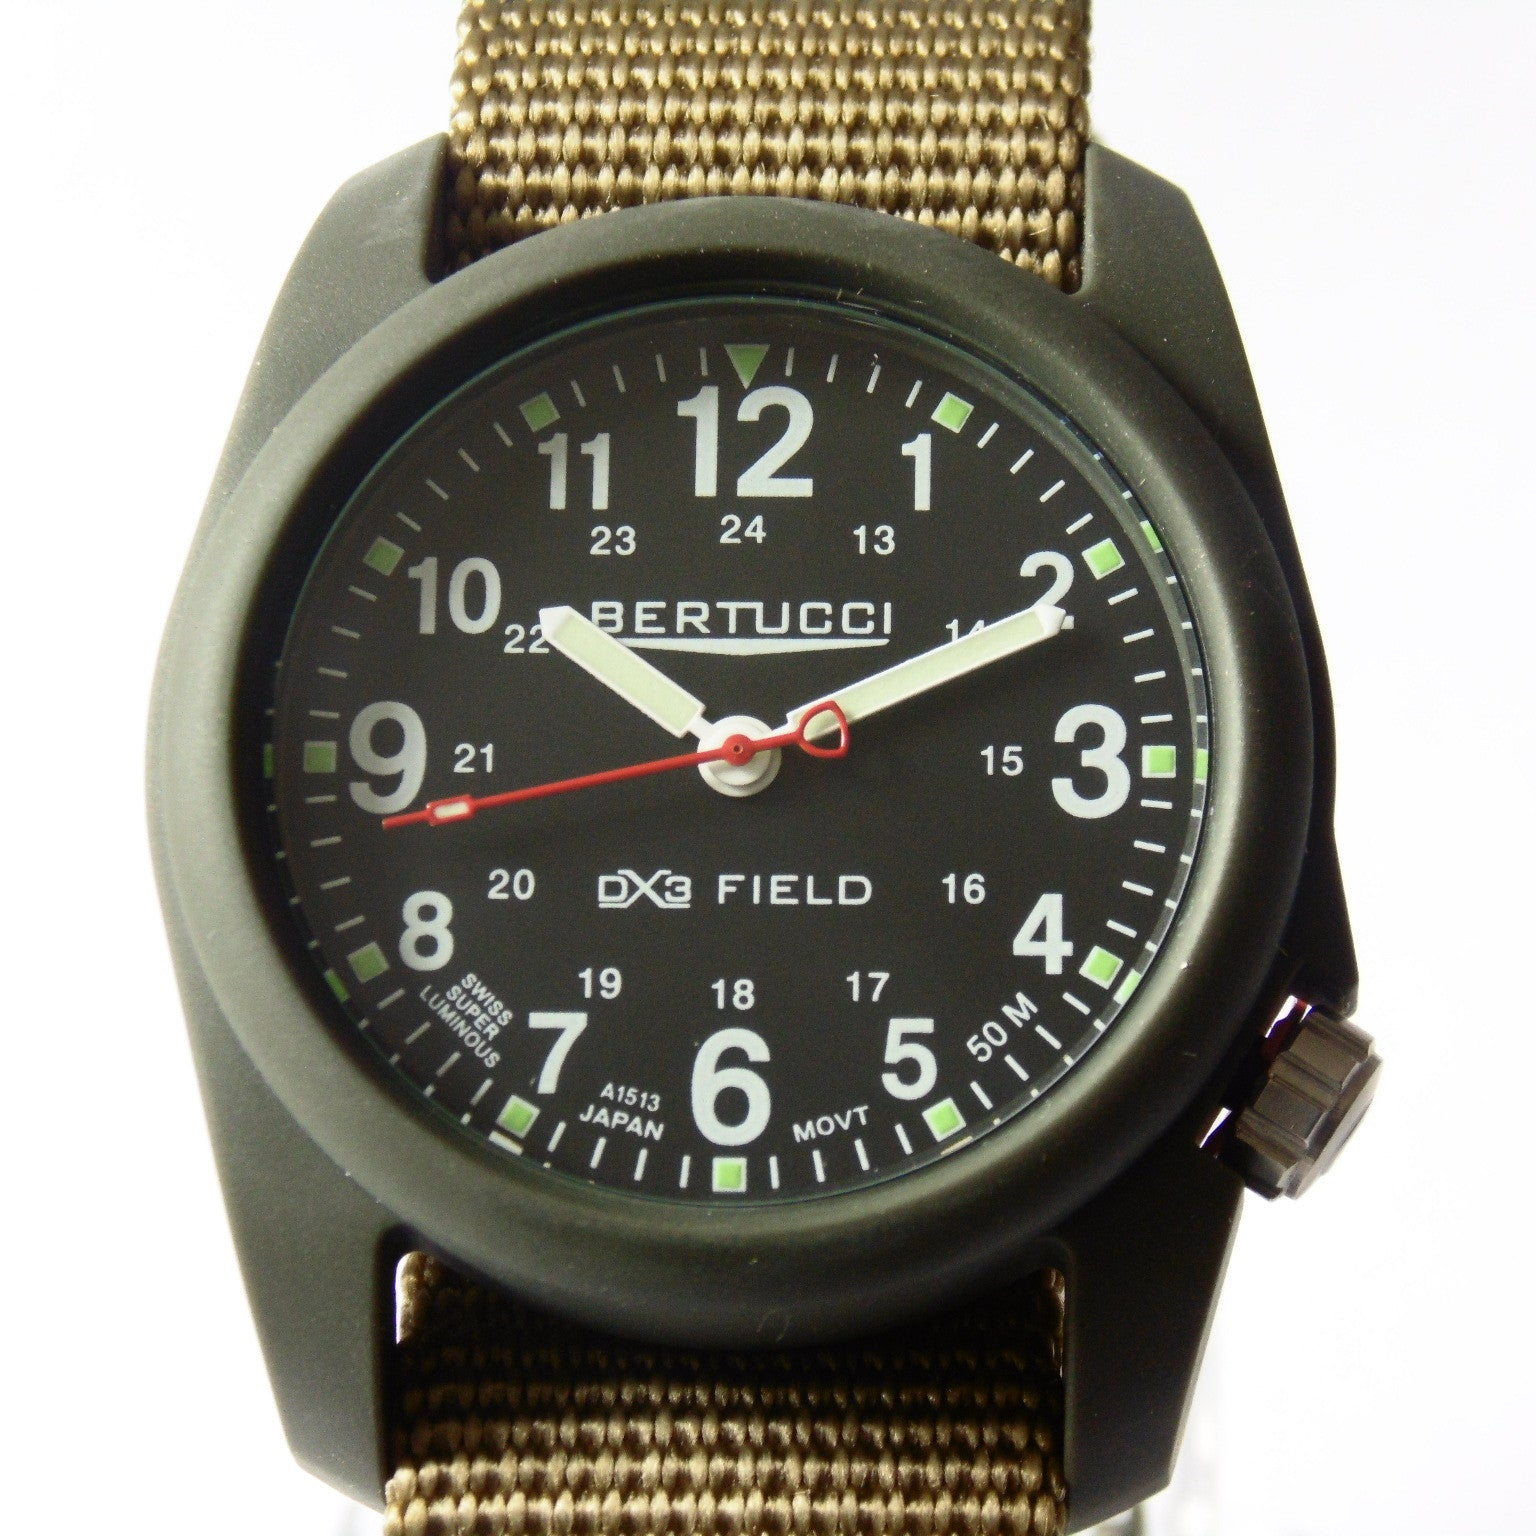 Bertucci DX3 Olive Resin Watch, Coyote Nylon Strap, Black Dial - 11027 - Watchfinder General - UK suppliers of Russian Vostok Parnis Watches MWC G10  - 3